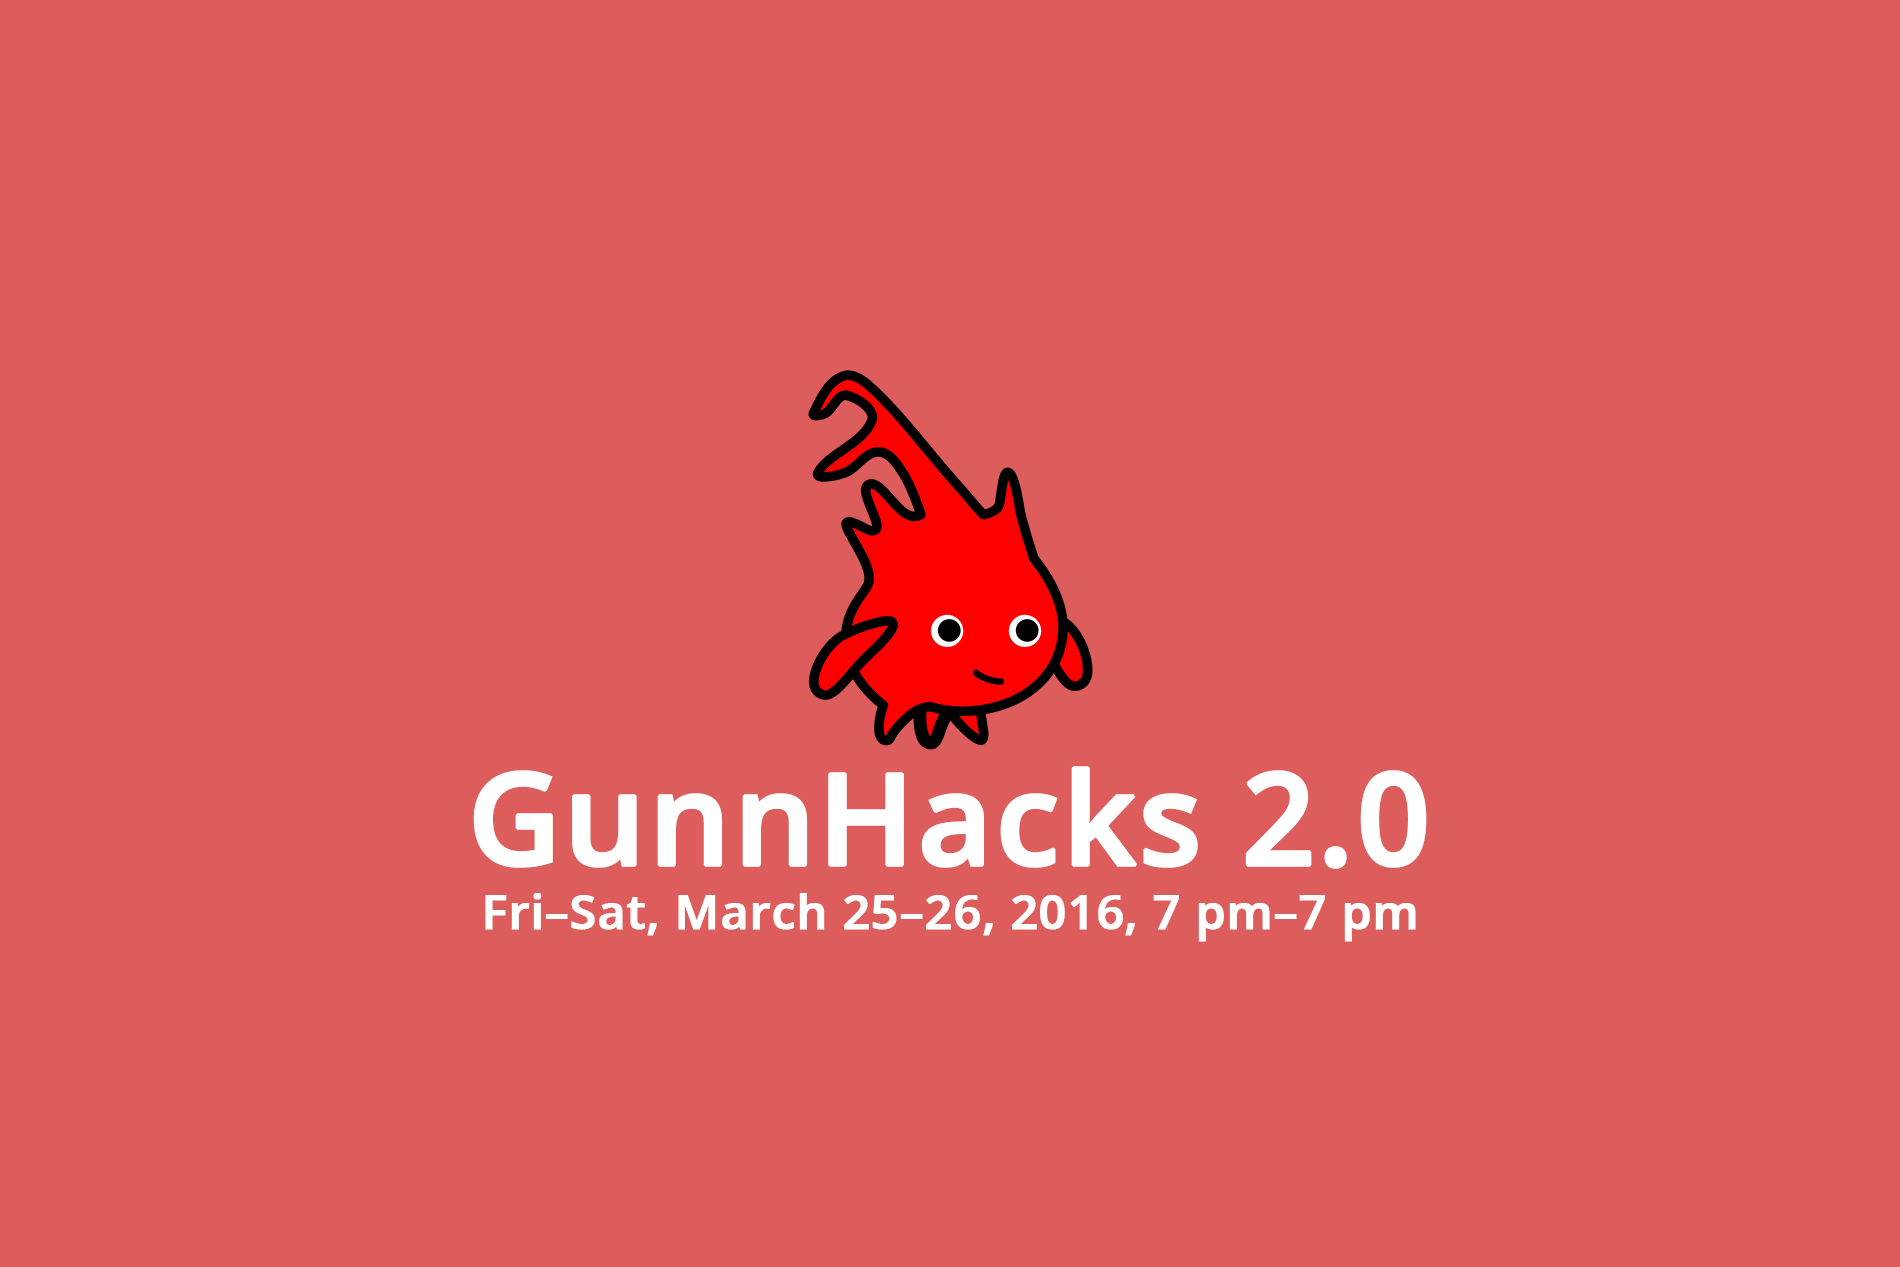 Gunn United Computations to host annual high school hackathon